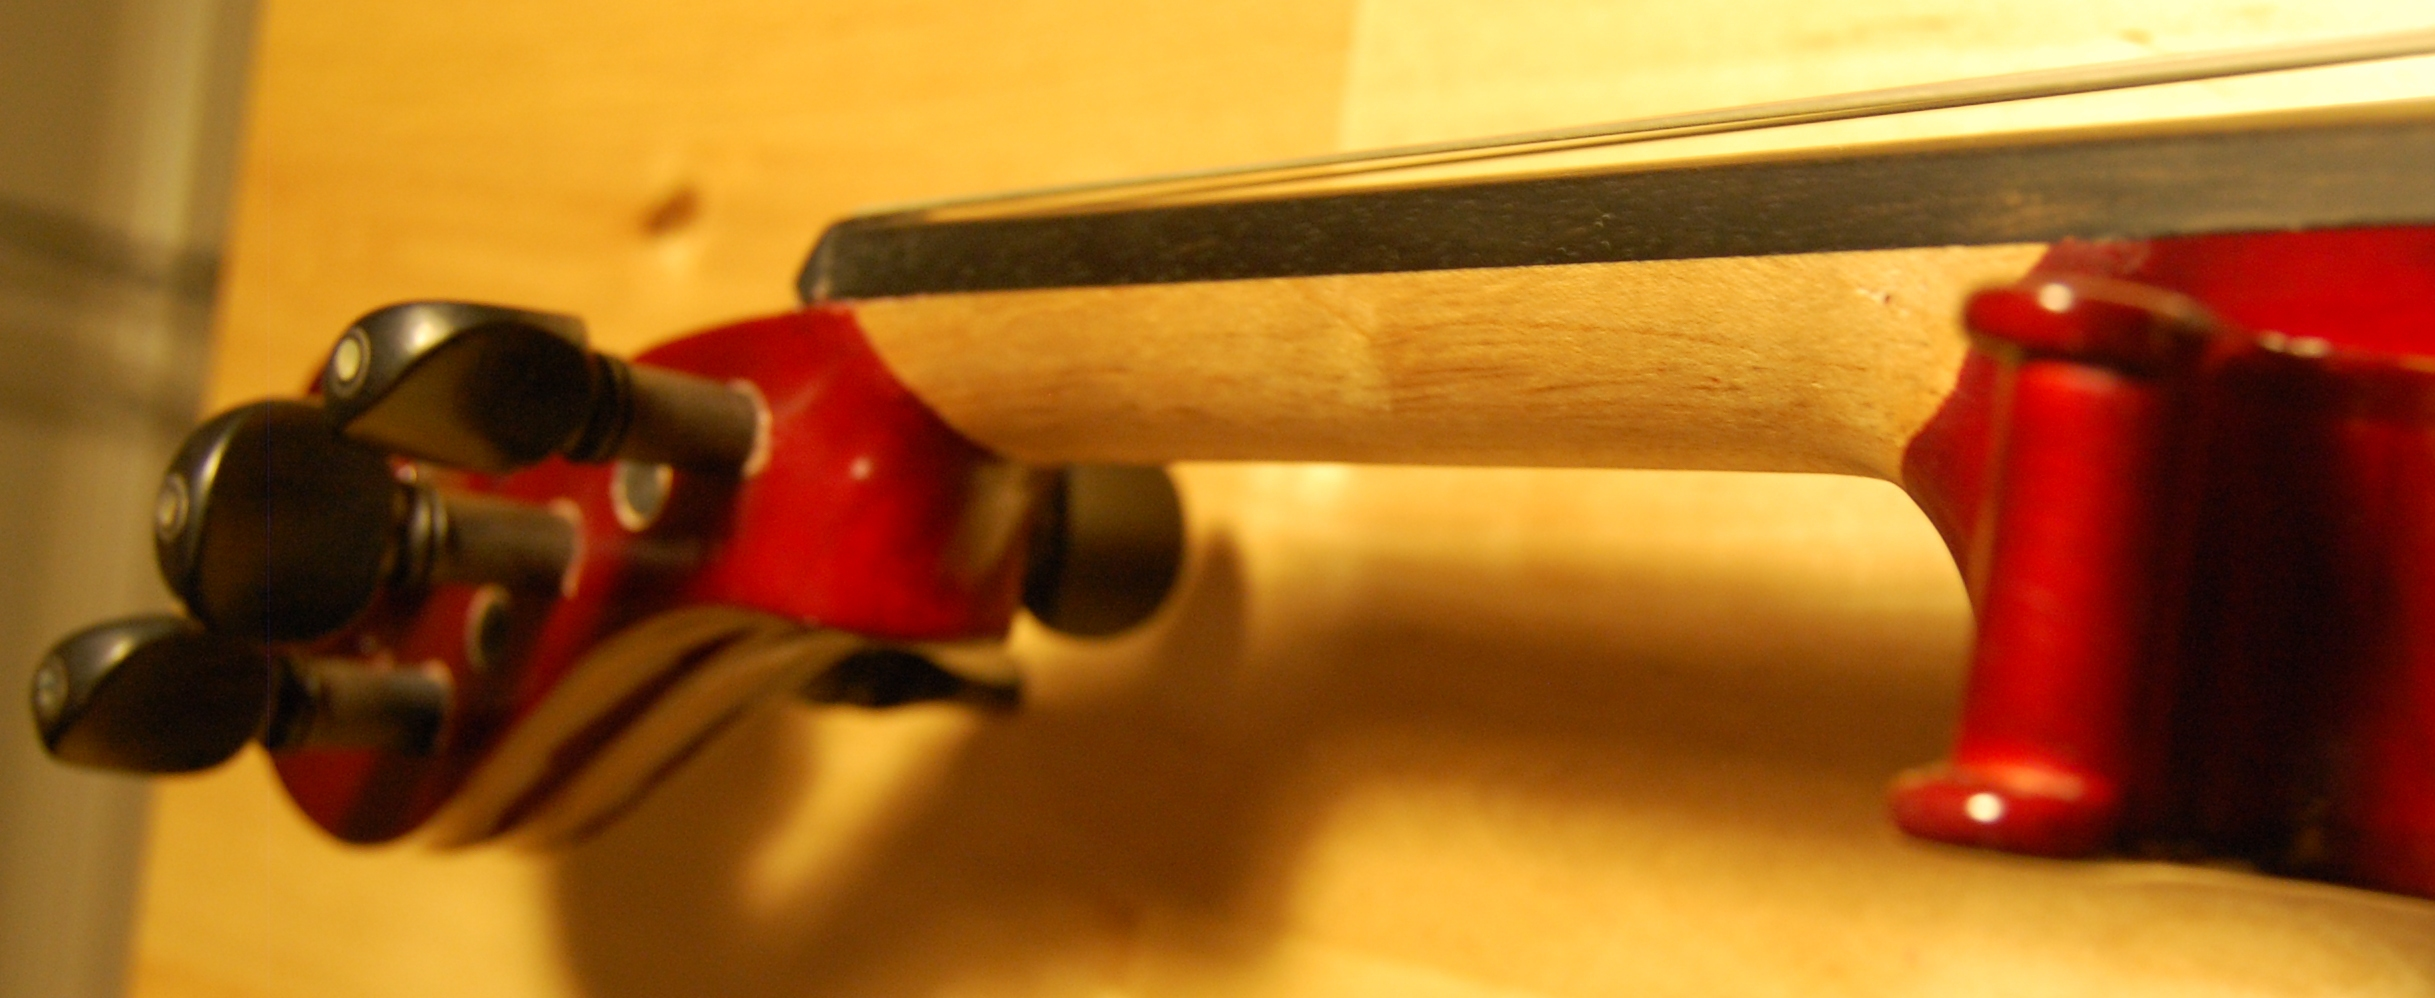 fingerboard-joint-scraped.JPG